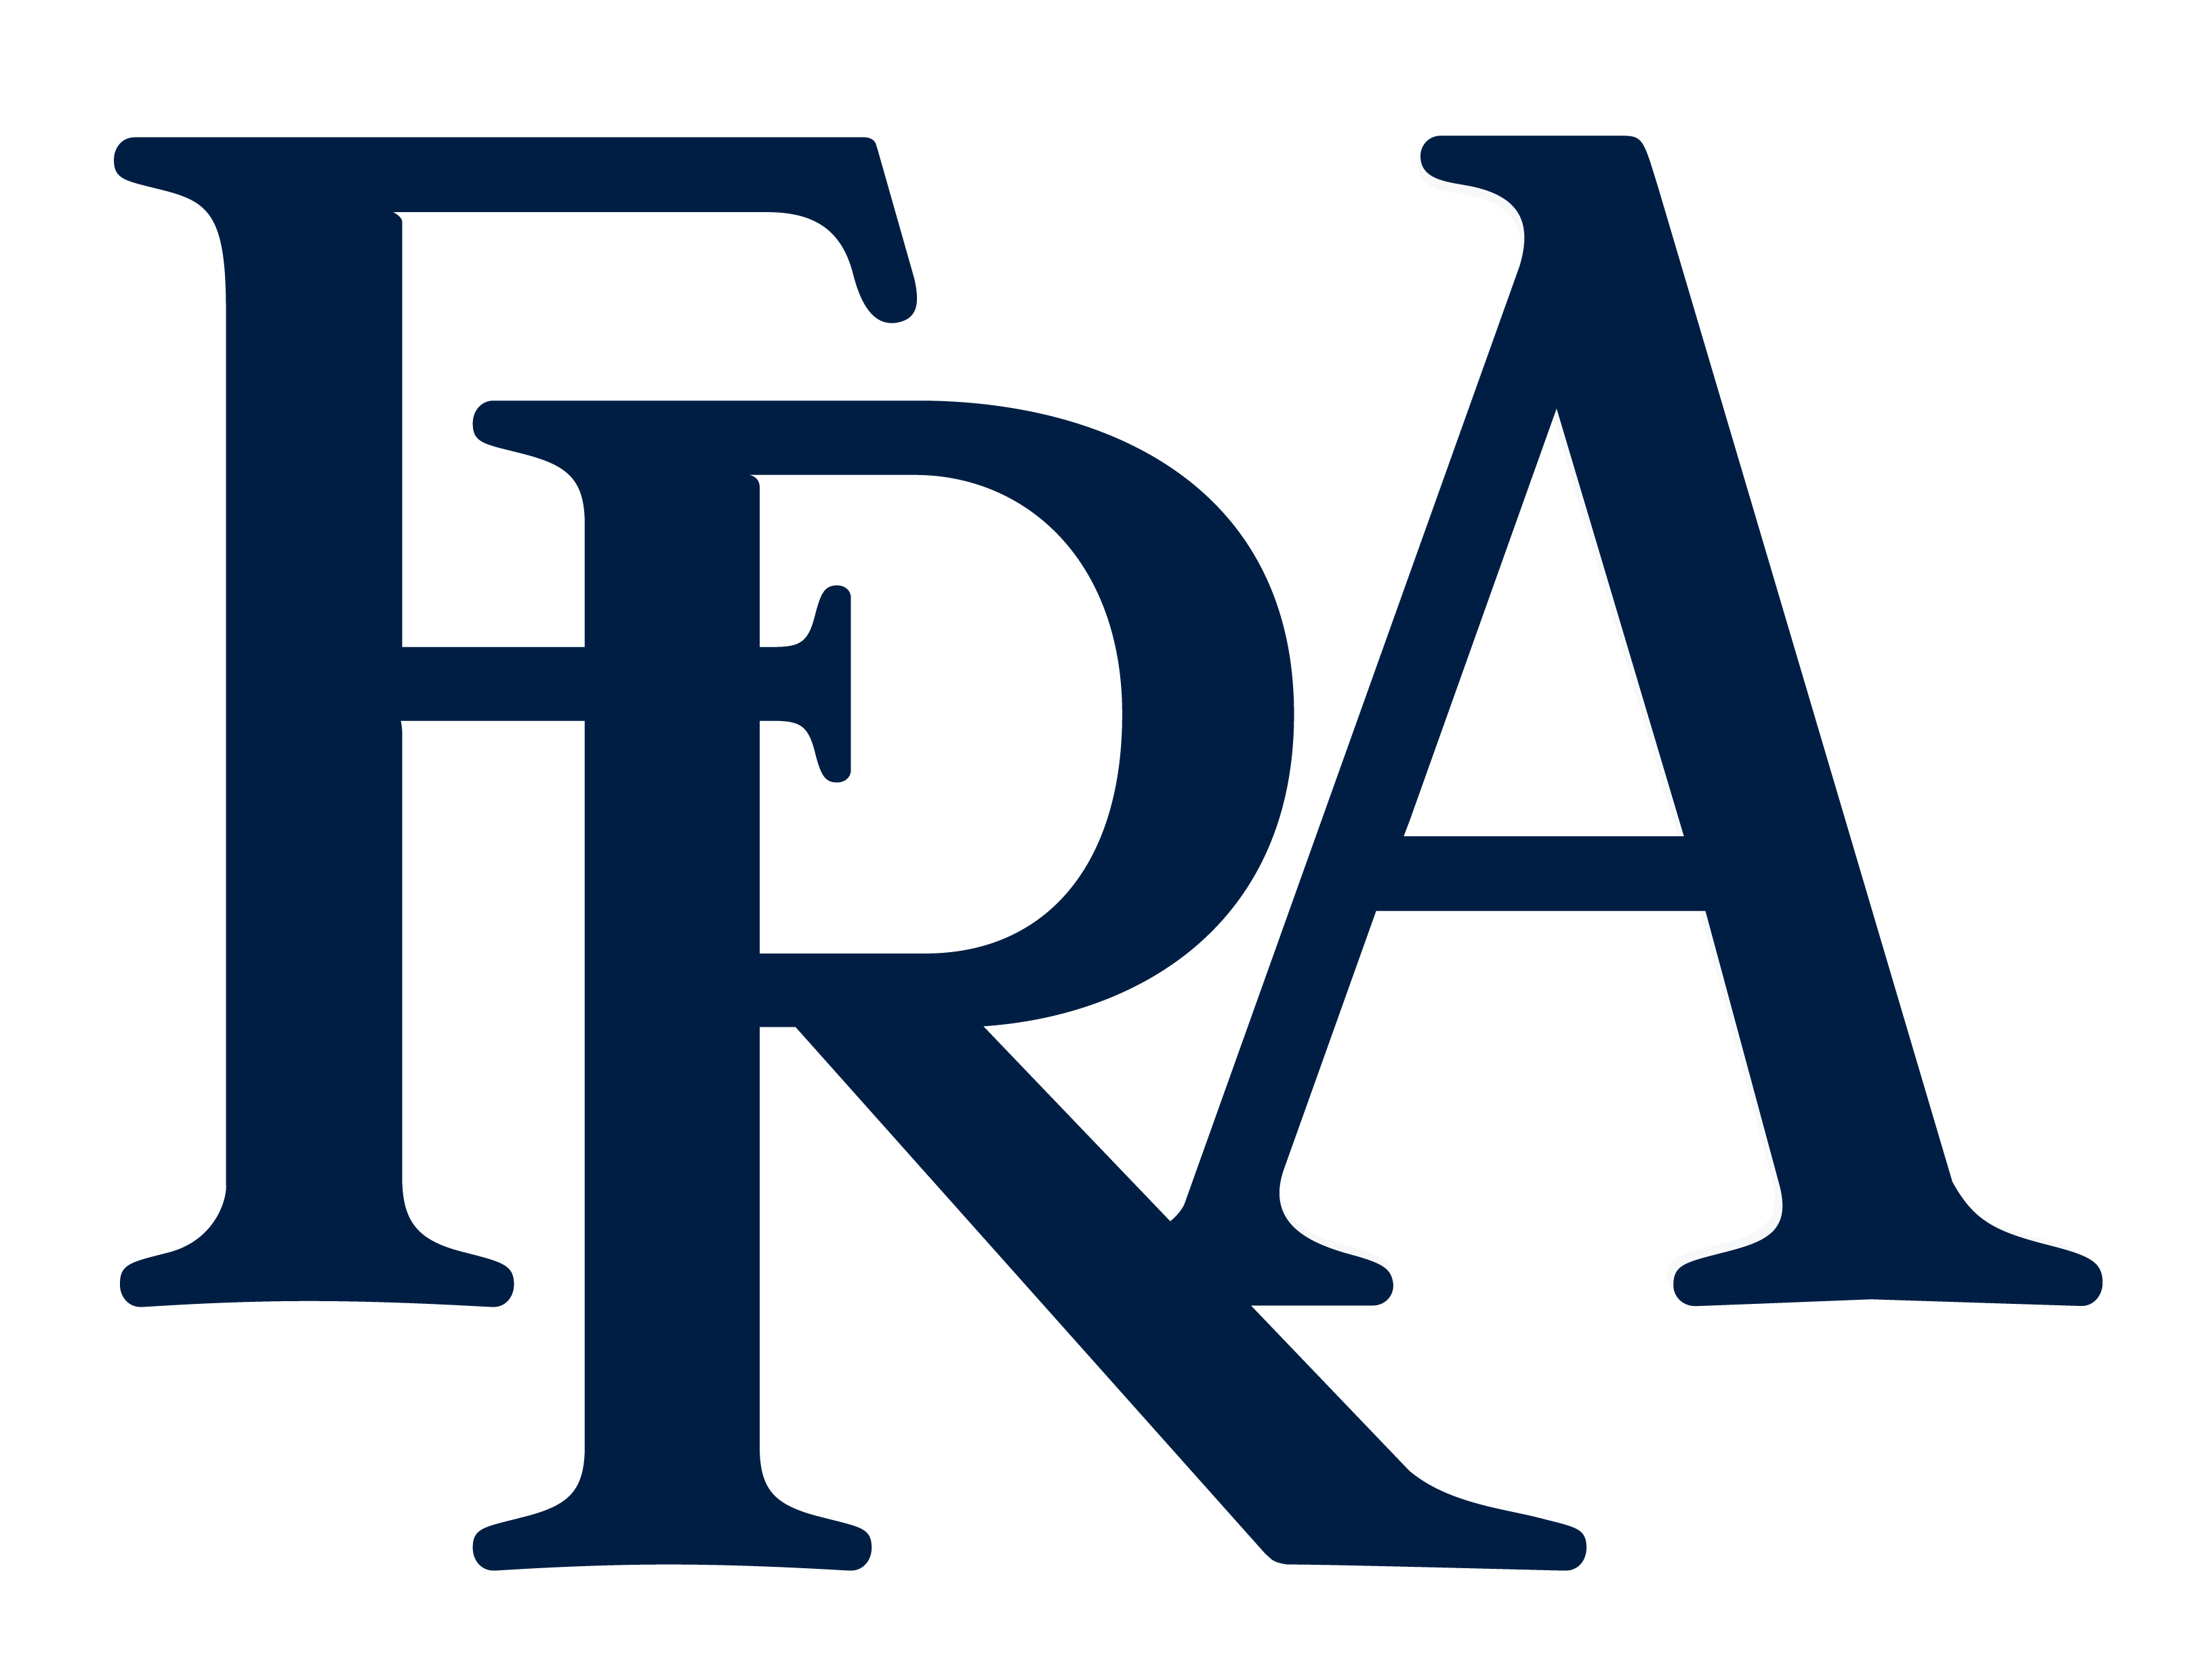 Logo_Franklin_Road_Academy.jpg